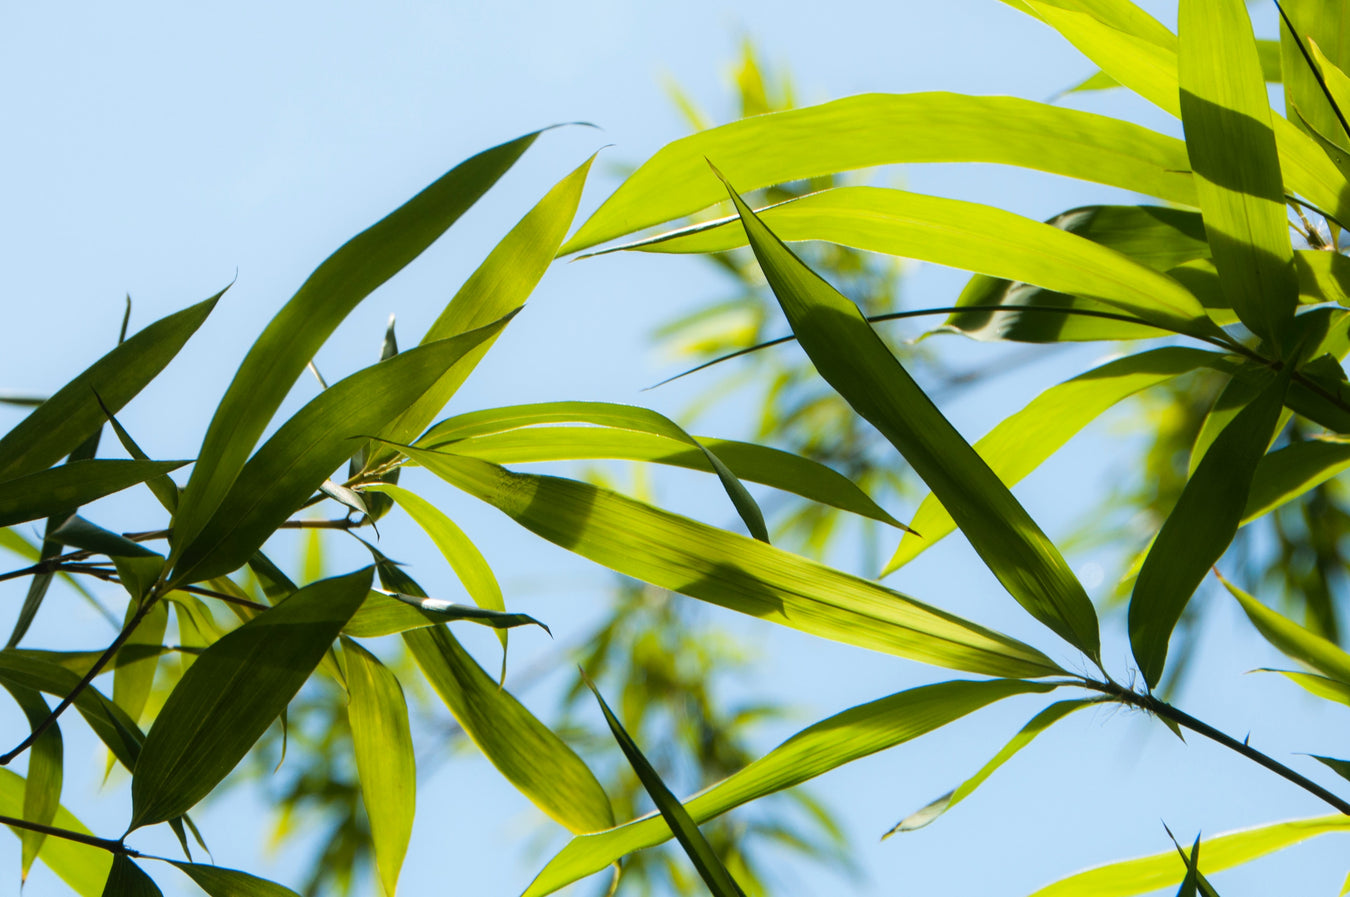 bamboo-growing-blue-sky-plant-based-nz